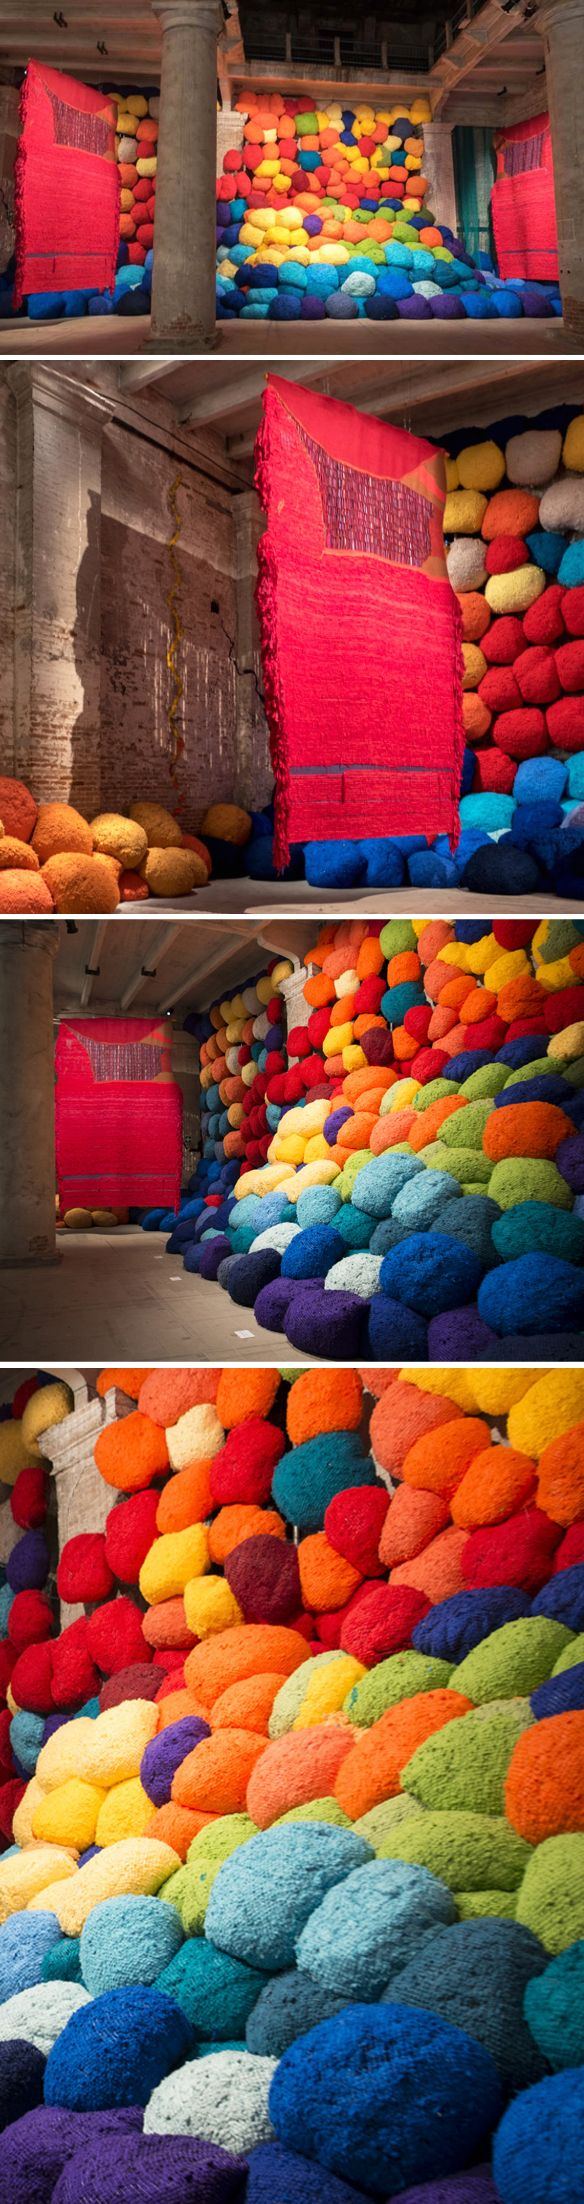 installation by sheila hicks - venice biennale 2017 <3